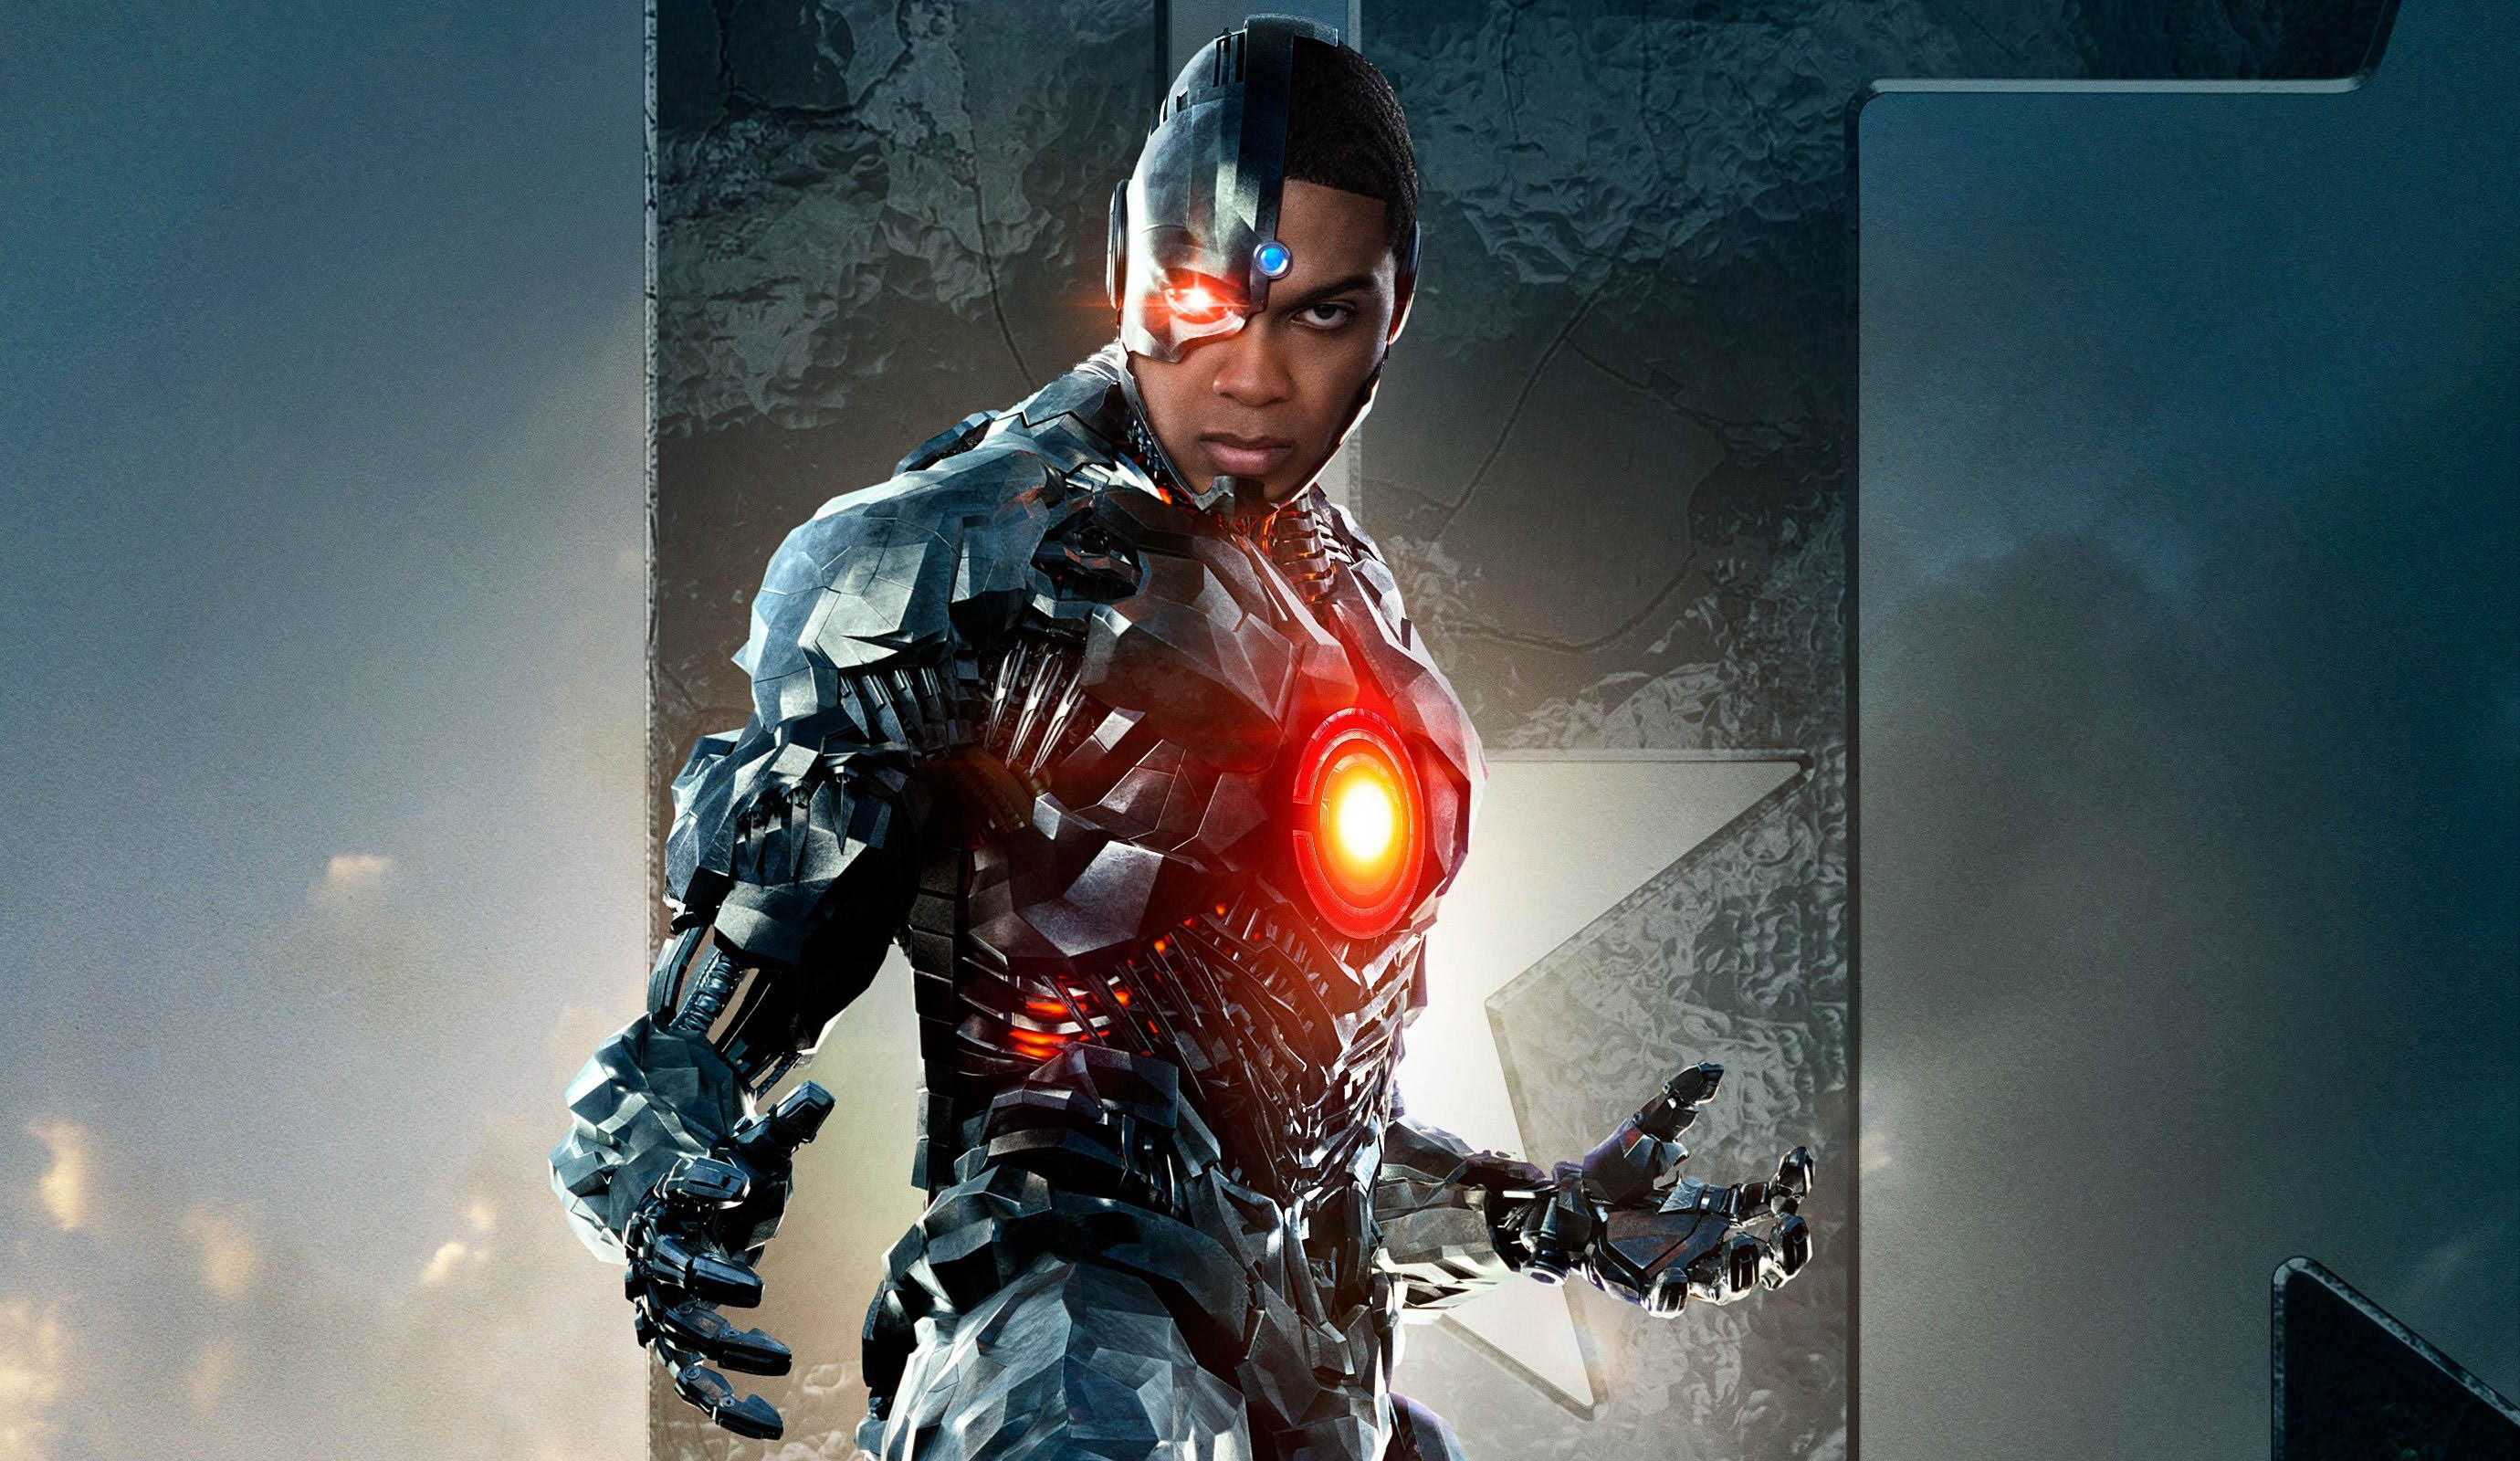 Cool Wallpaper Movie Justice League - Justice-League-3  Pic_524577.jpg